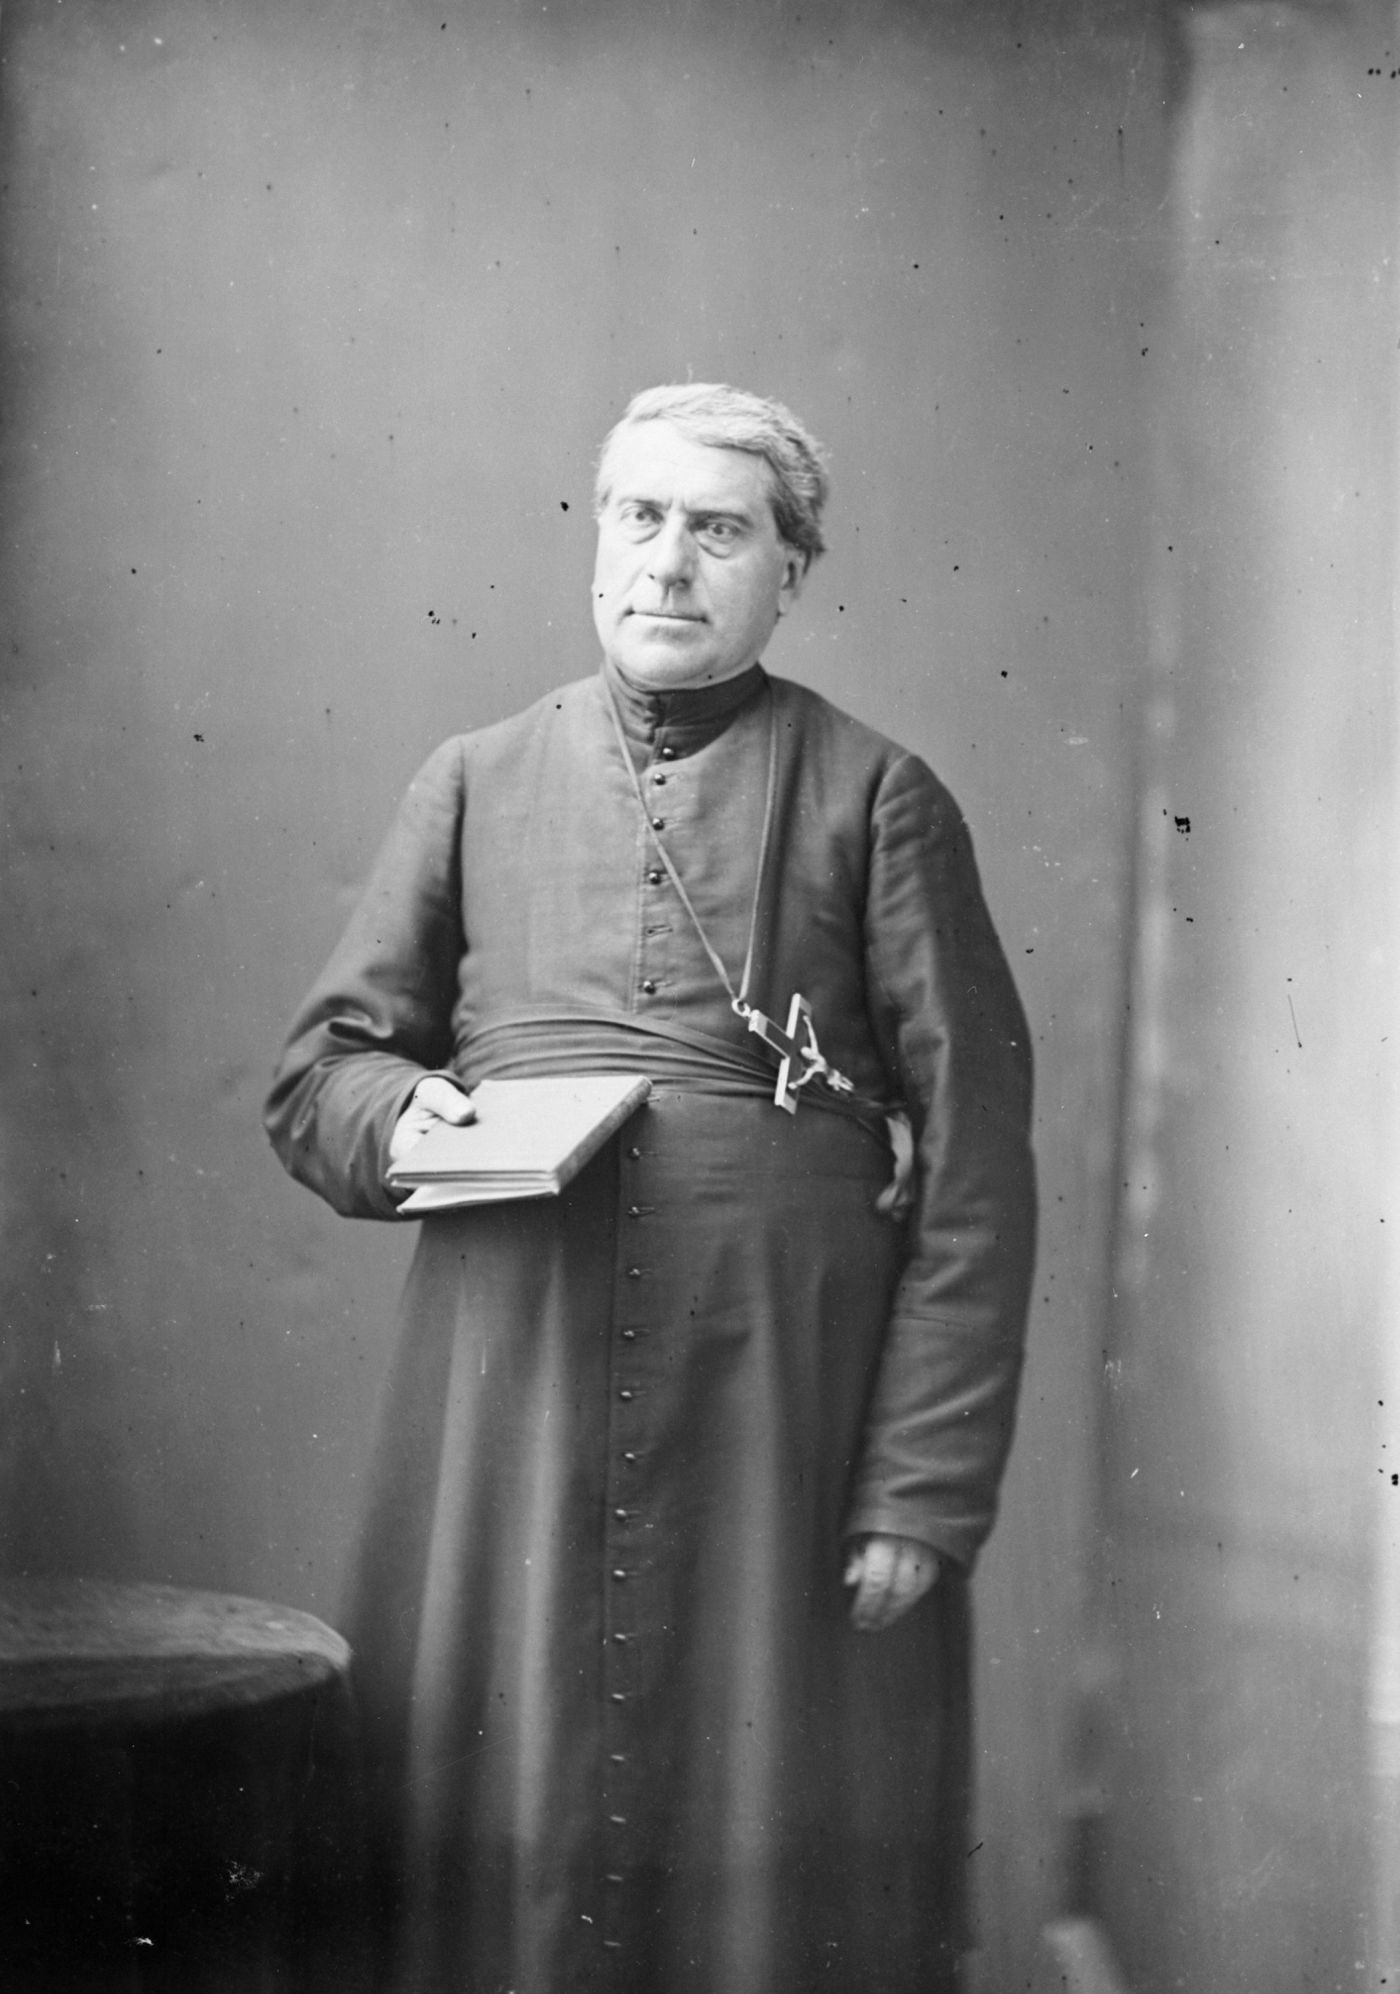 Black and white studio photograph of a mature priest wearing a cassock and a large cross. He is standing, holding a book in his right hand.